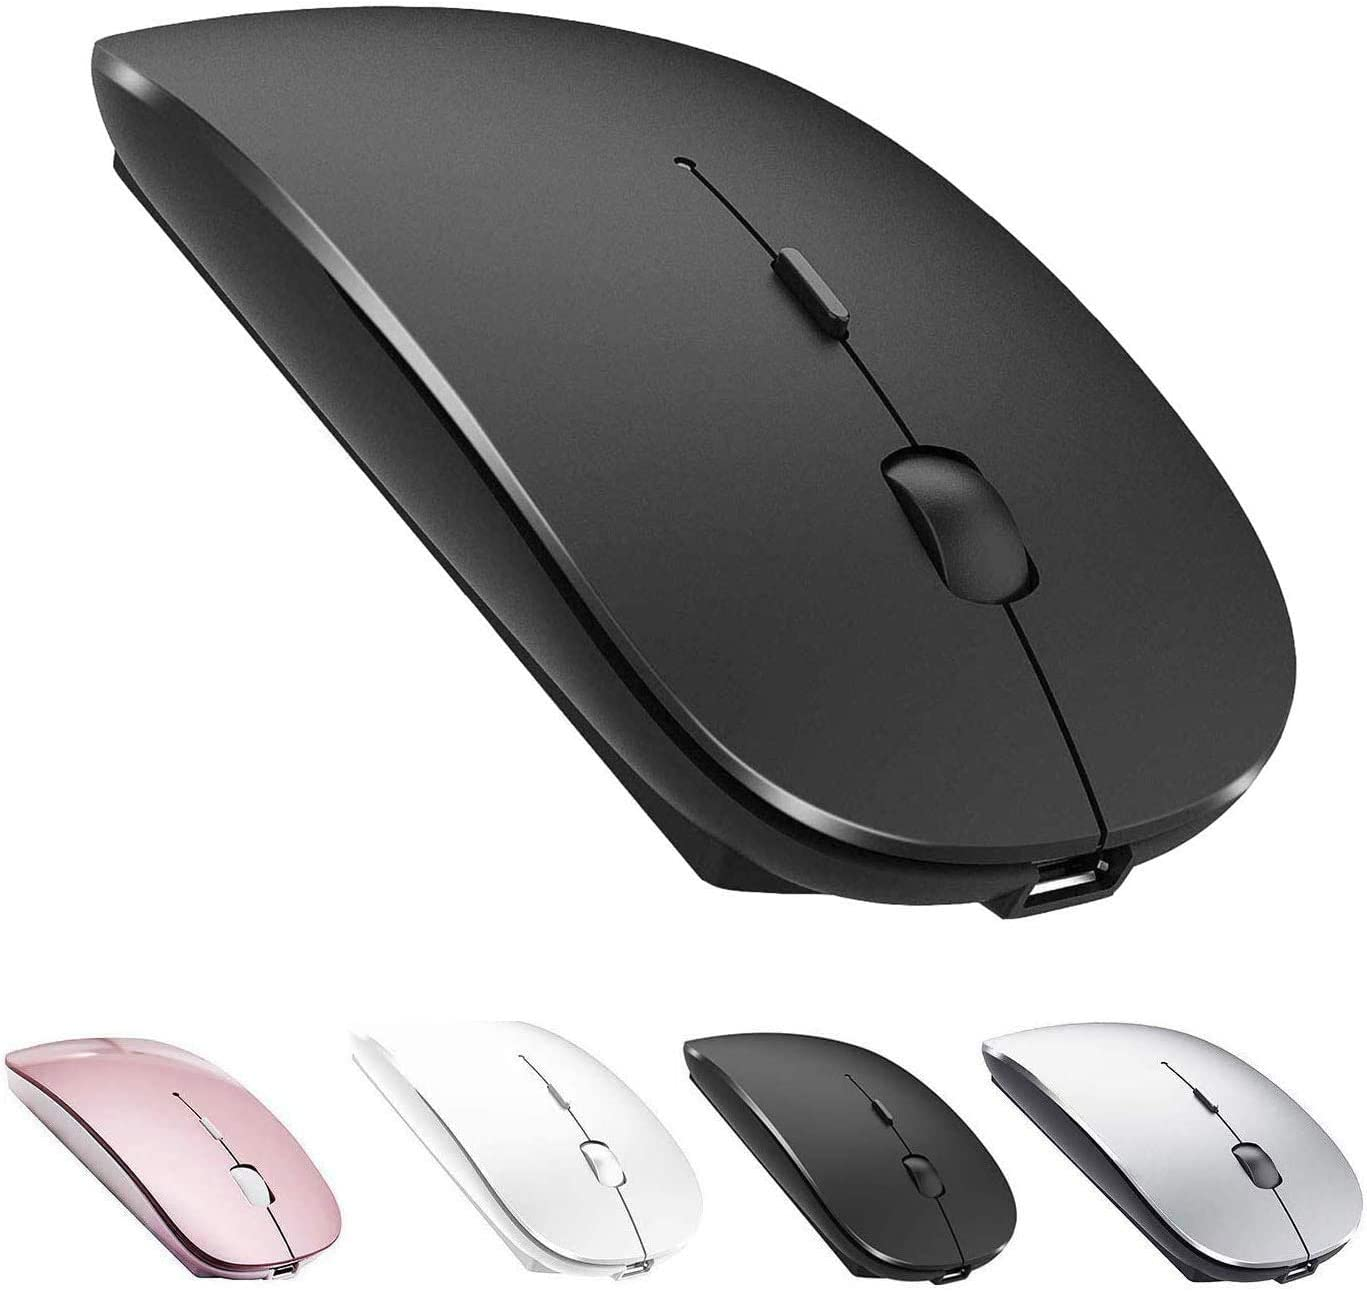 RENKUNDE Bluetooth Mouse for Tablet Wireless Mouse Rechargeable Mouse Mouse Color : Black